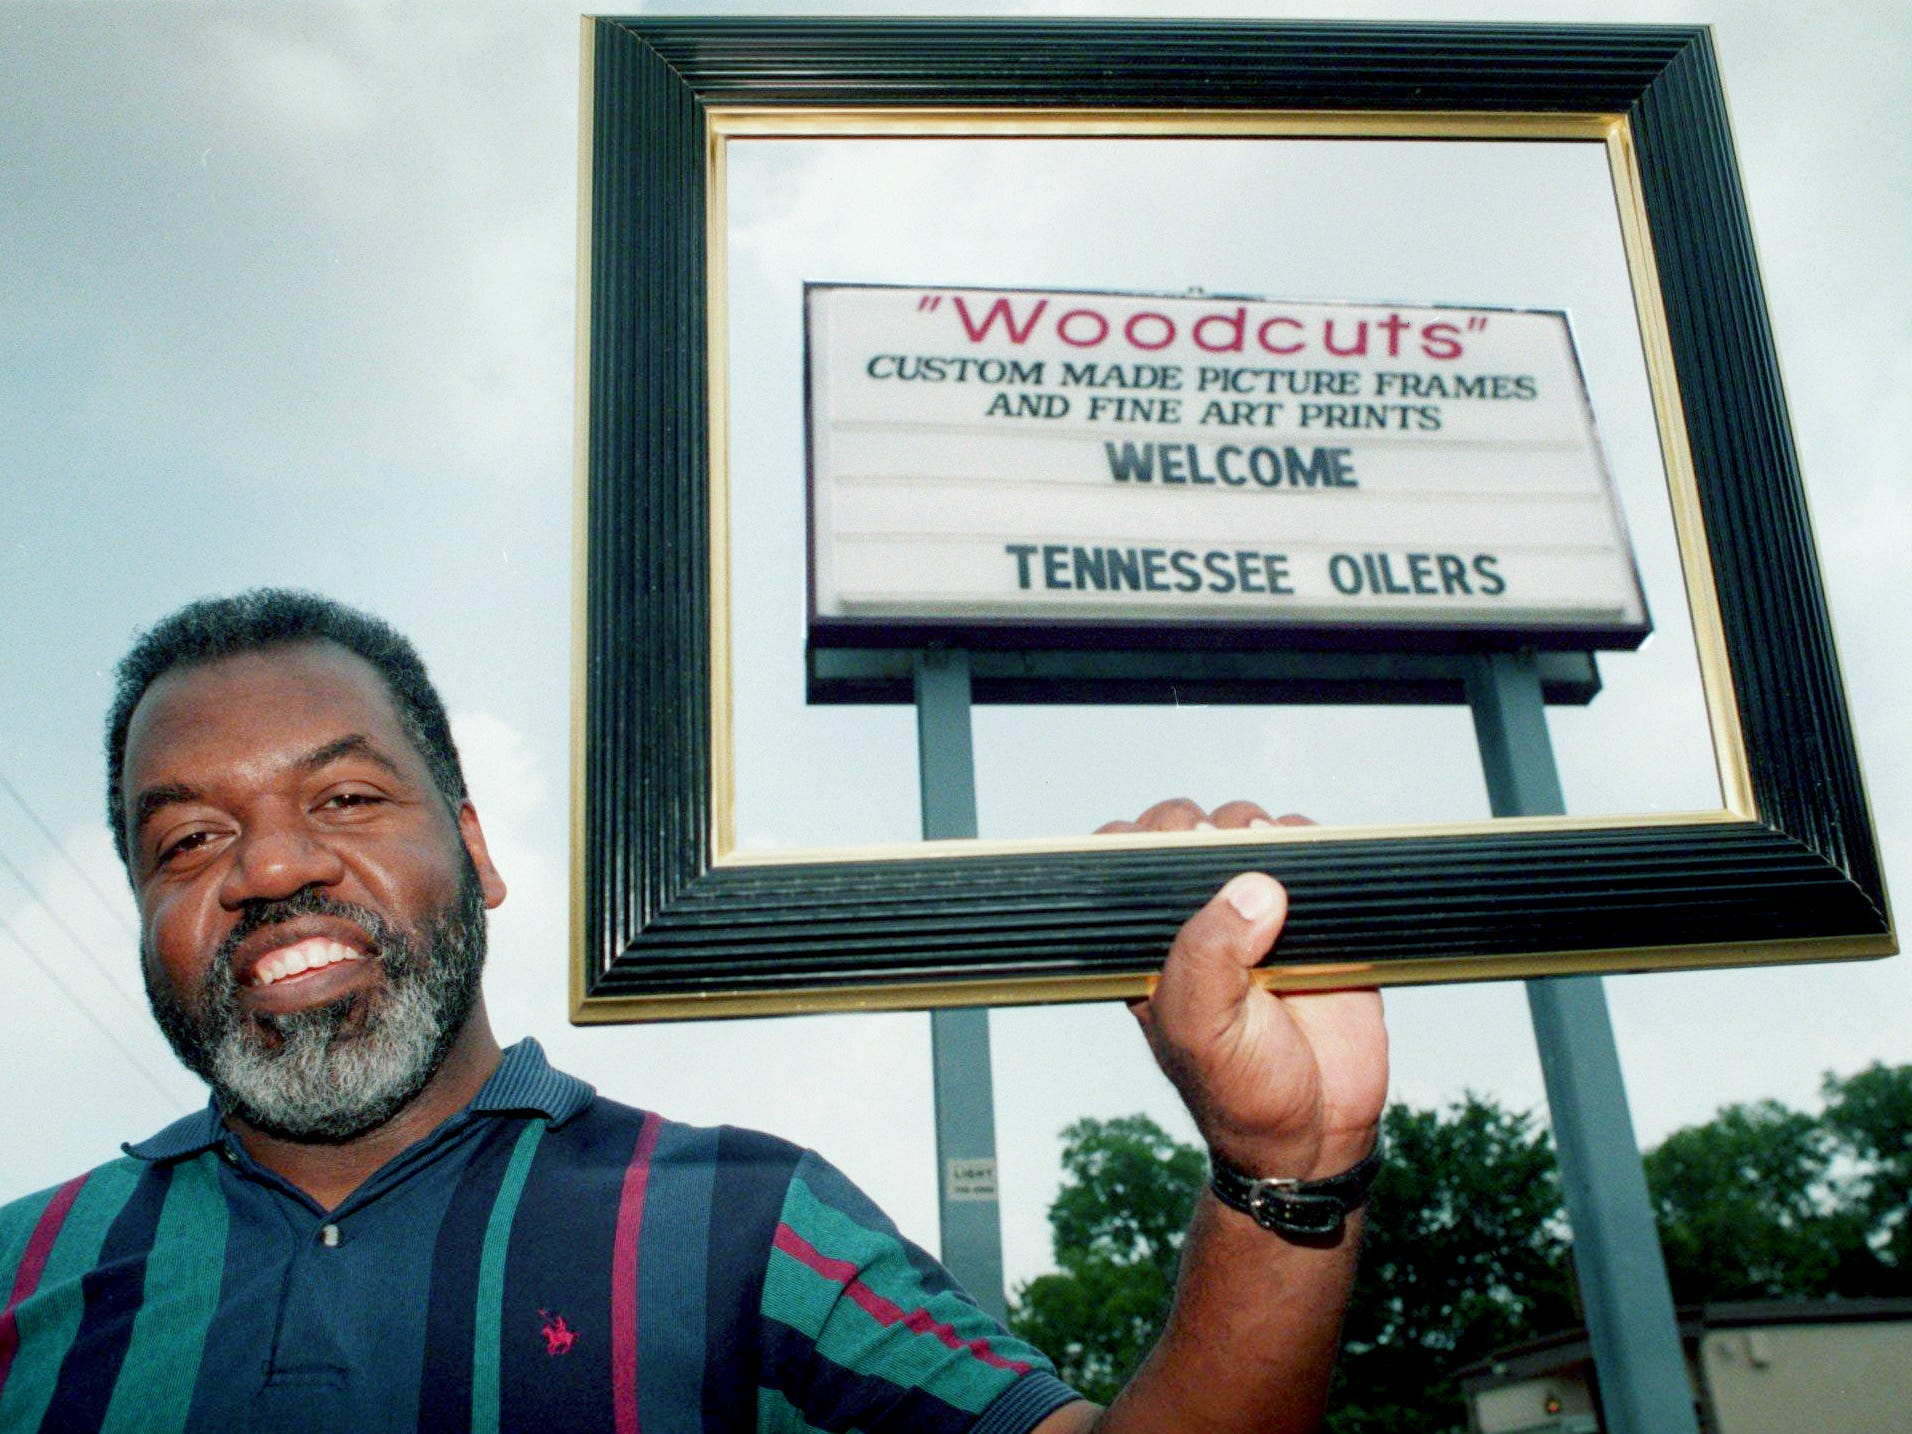 Nathaniel Harris, owner of Woodcuts on Jefferson Street, is one of several businesses attempting to attract business from the Tennessee Oilers July 23, 1997.